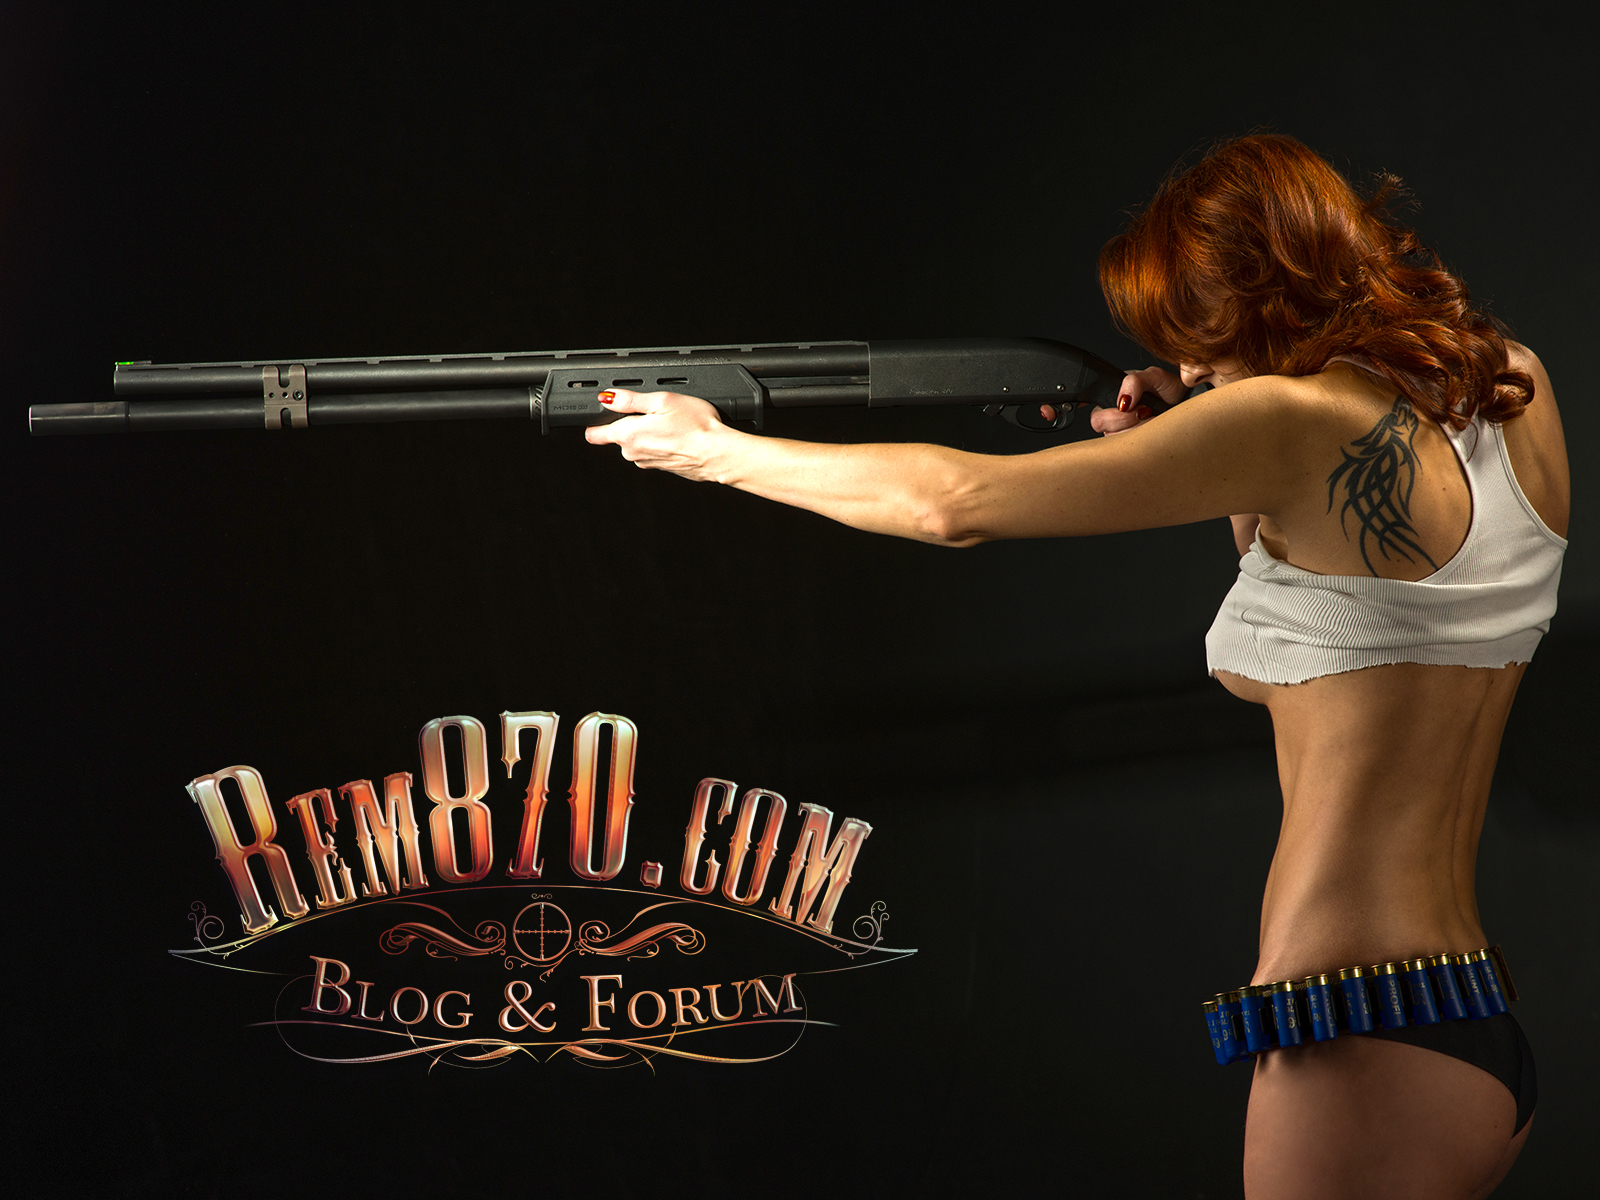 Download FREE Rem870 Wallpaper Hot Girl with Remington 870